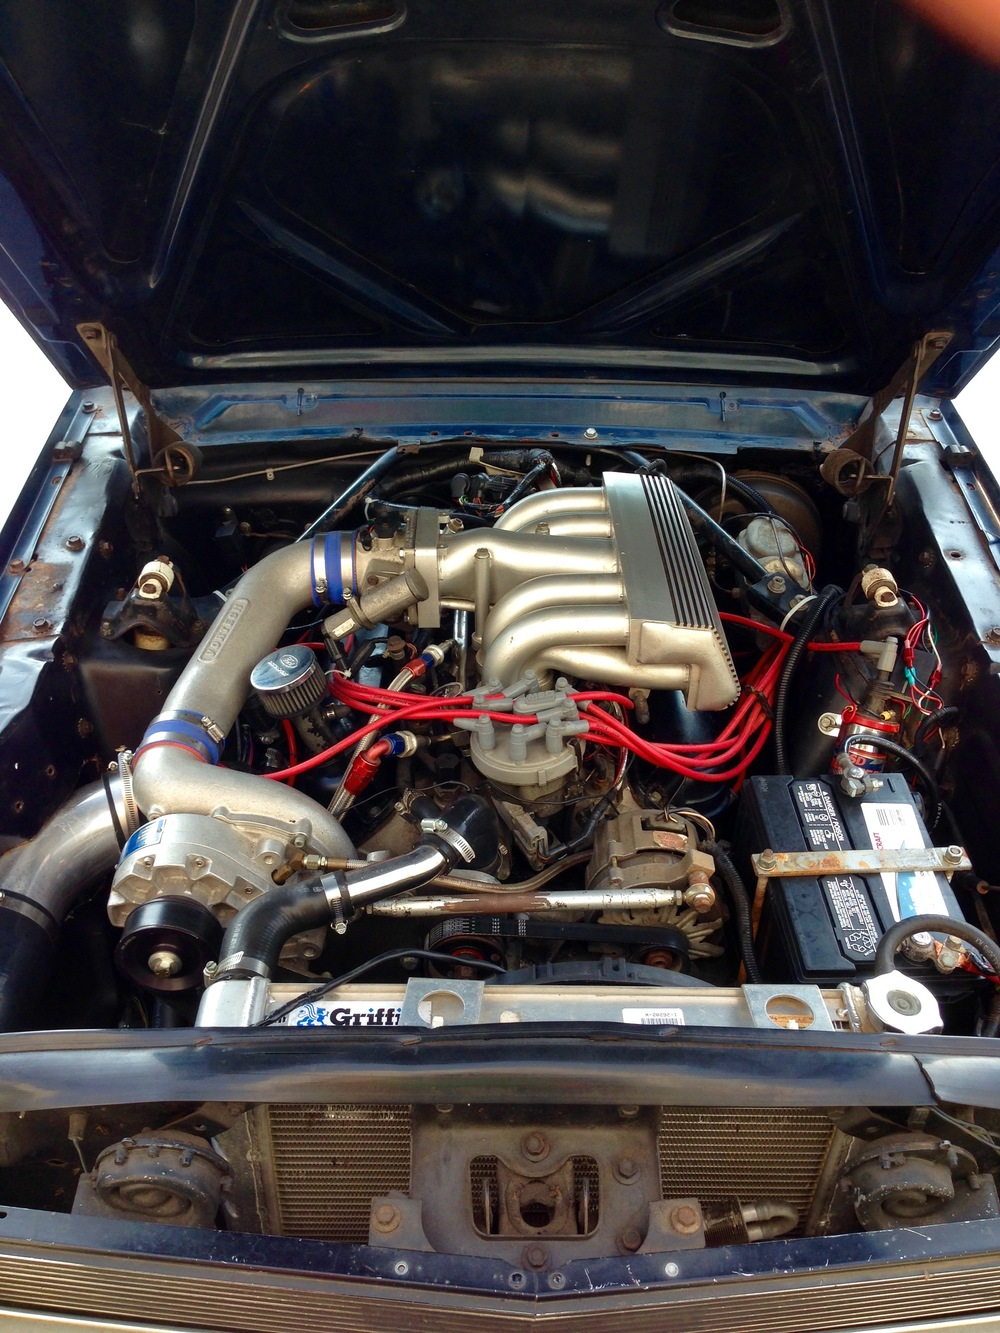 Mikes 66 Engine